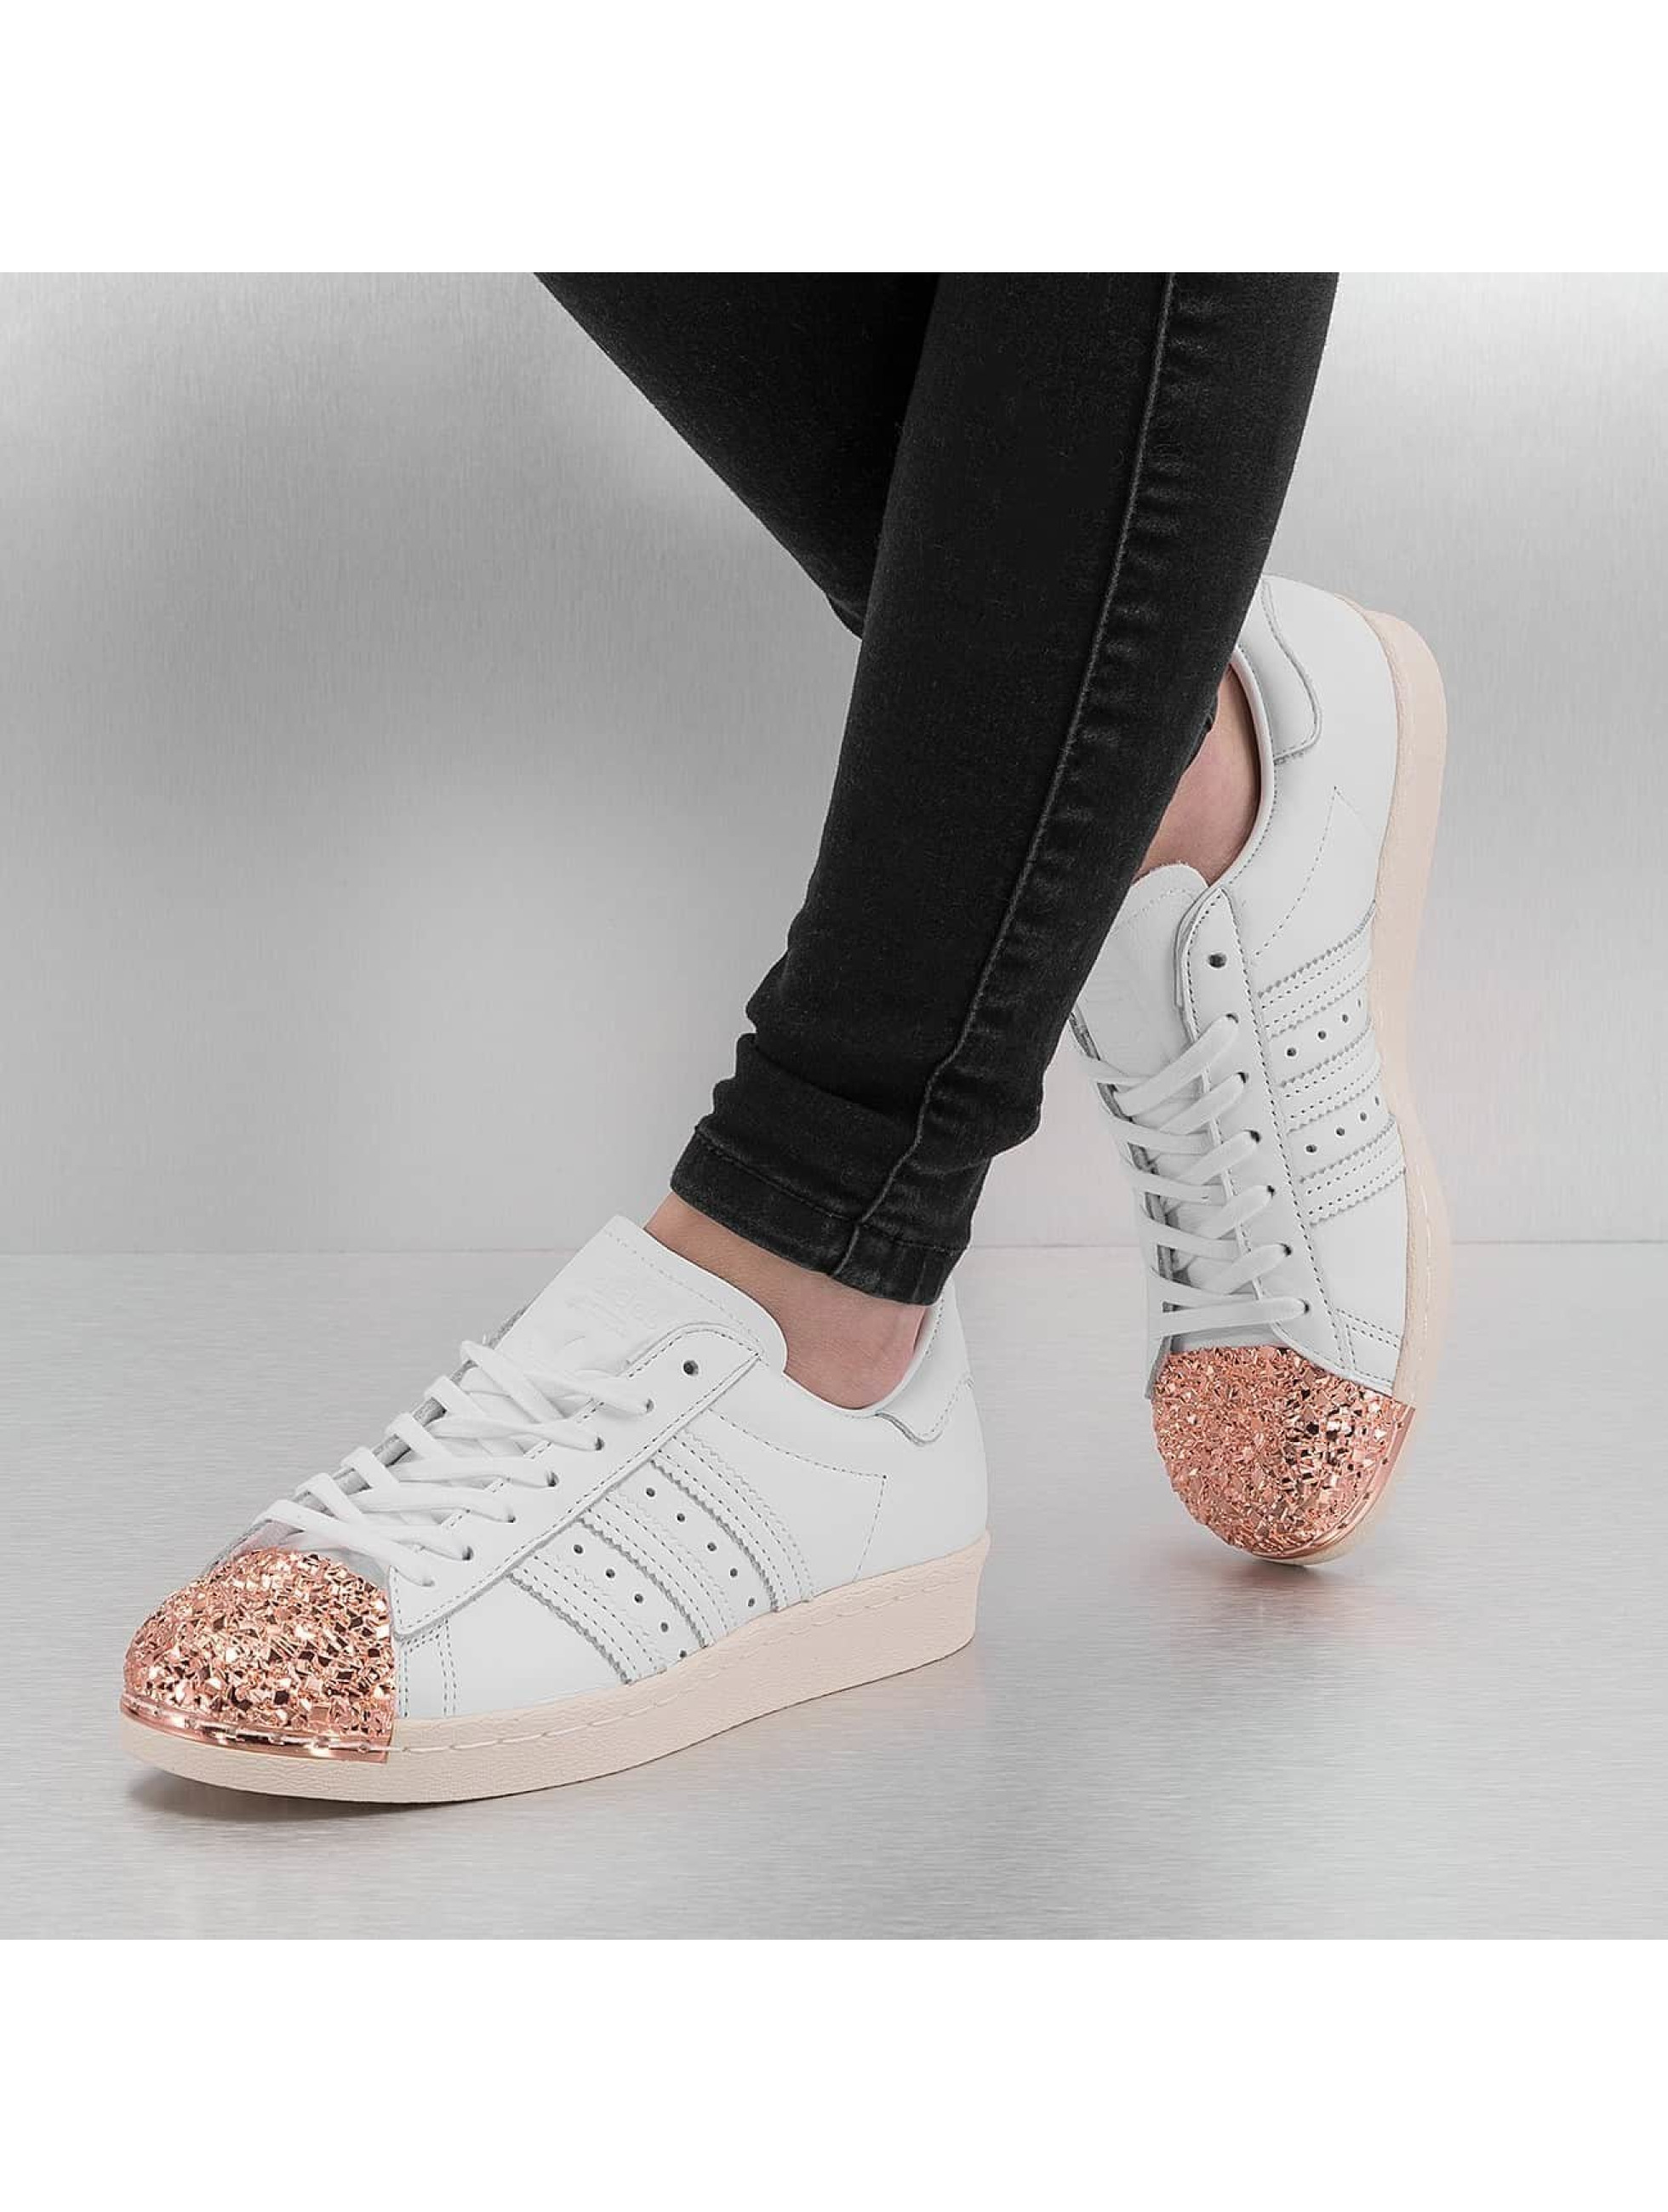 adidas Sneakers Superstar 80s 3D Metall W white